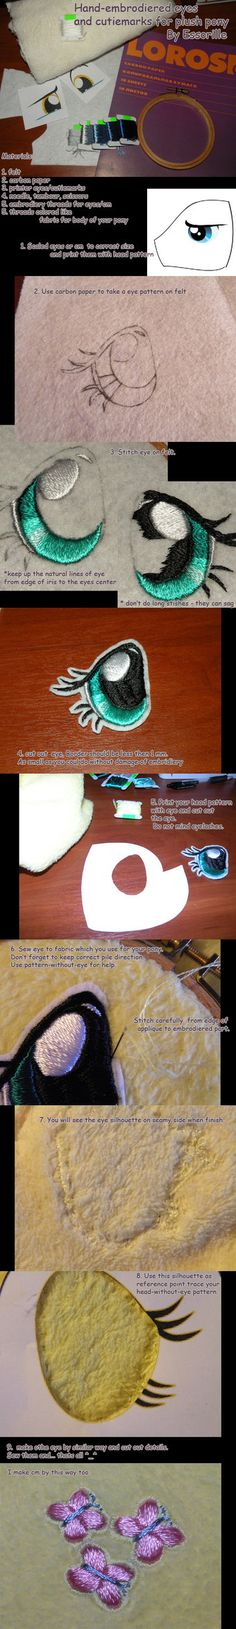 hand-embroidered plush eyes tutorial by *Essorille , How to Embroider My Little Pony Eyes, My Little Pony Plushie Tutorial , Animal Plushies, Softies & Furries Arts and Crafts, My Little Pony Patterns for Fan Art Diy Projects, My Little Pony Sewing Template for Majesty Unicorn , pony, ponies, pattern, template, sewing, diy , crafts, kawaii, MIP